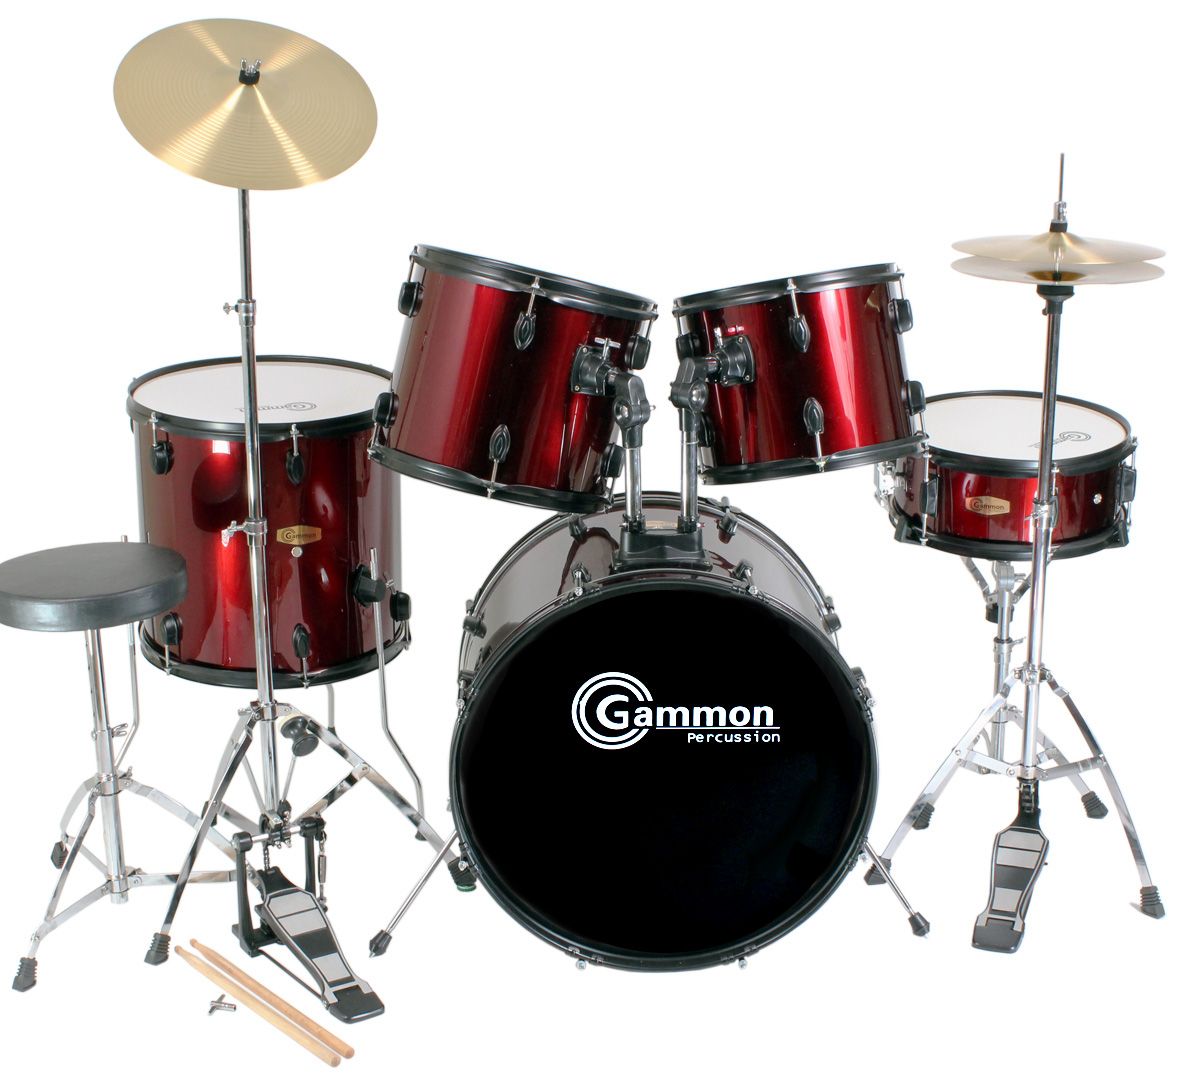 New Complete 5 Piece Adult Drum Set Cymbals Full Size With